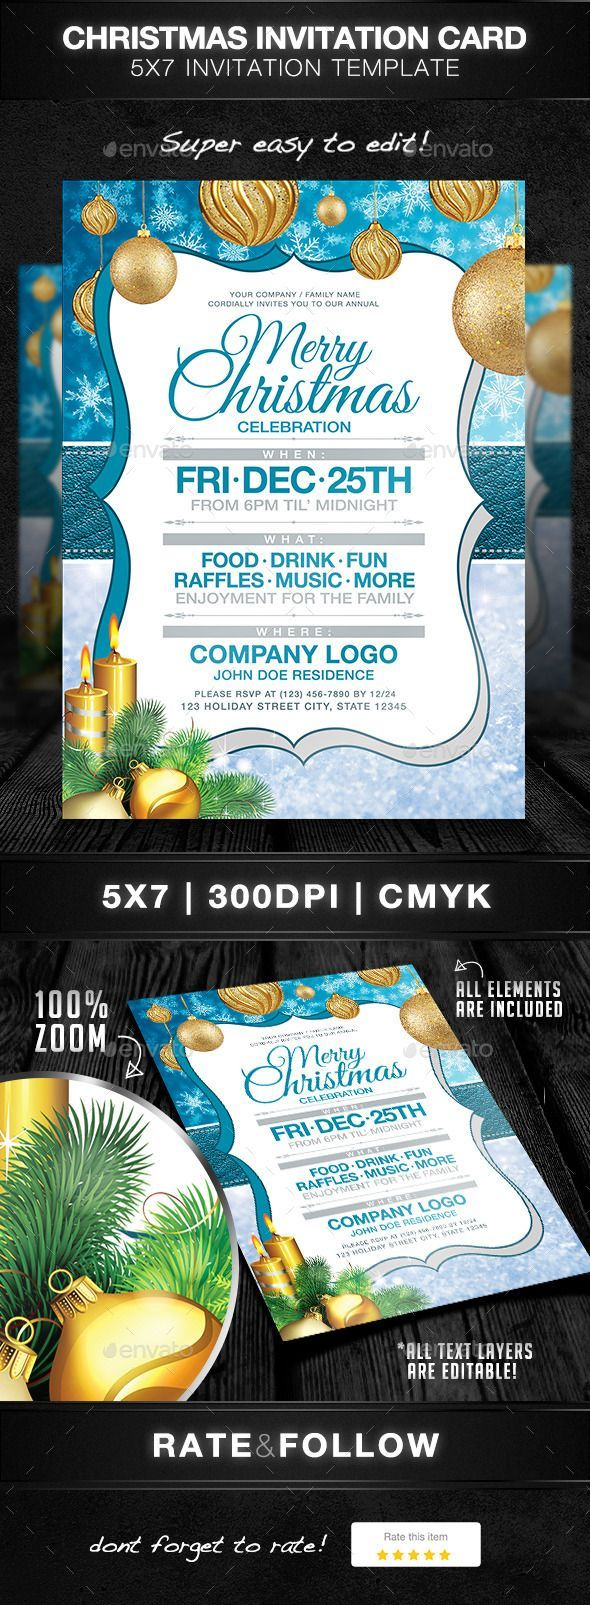 company christmas party invitation templates%0A Christmas Party Invitation Card  u     Photoshop PSD  snow flake  corporate  u      Available here